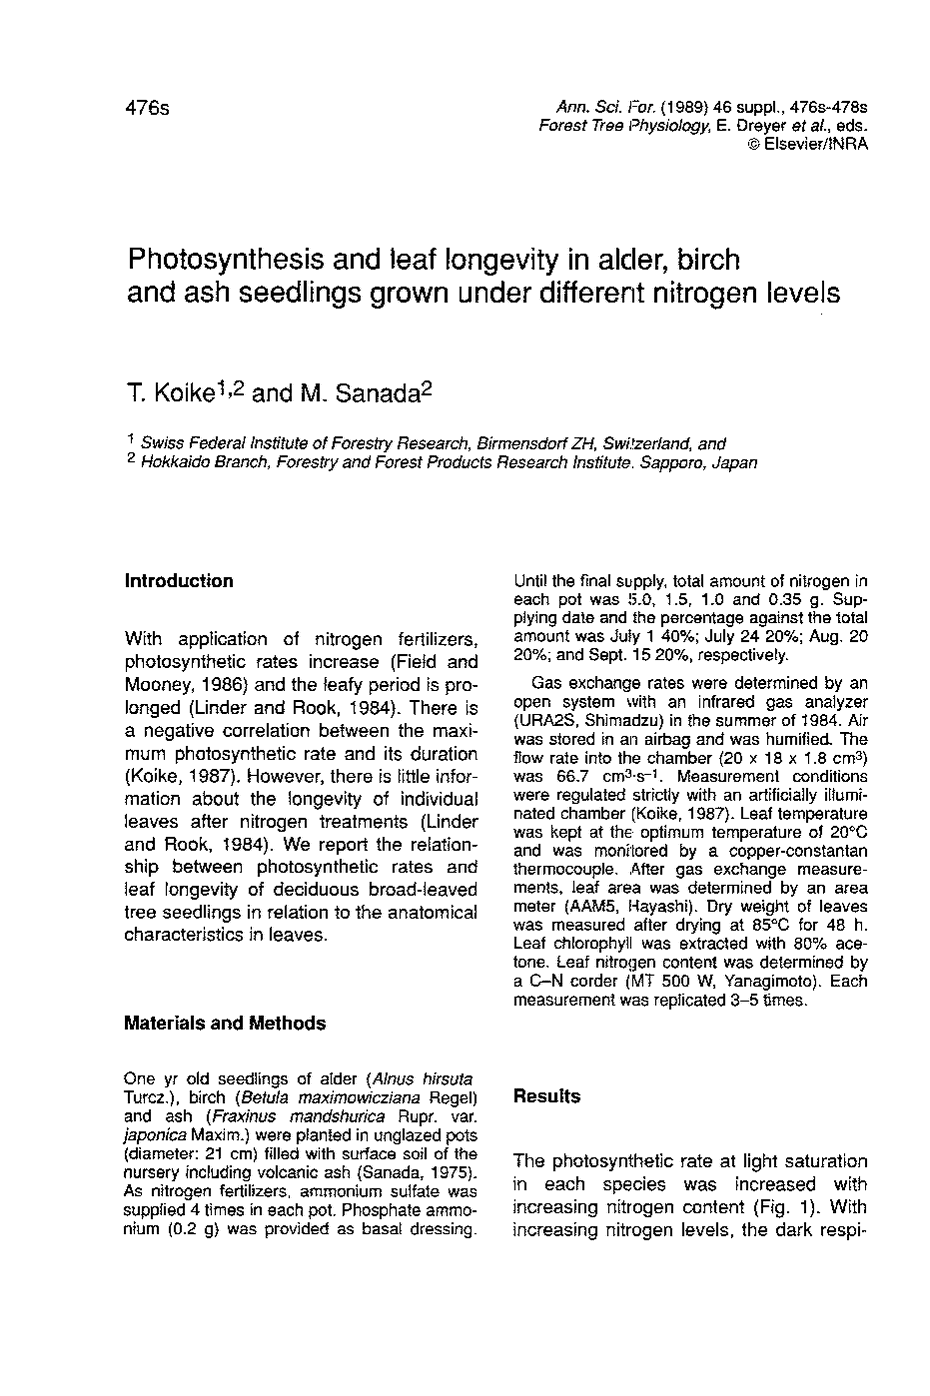 photsynthesis articles